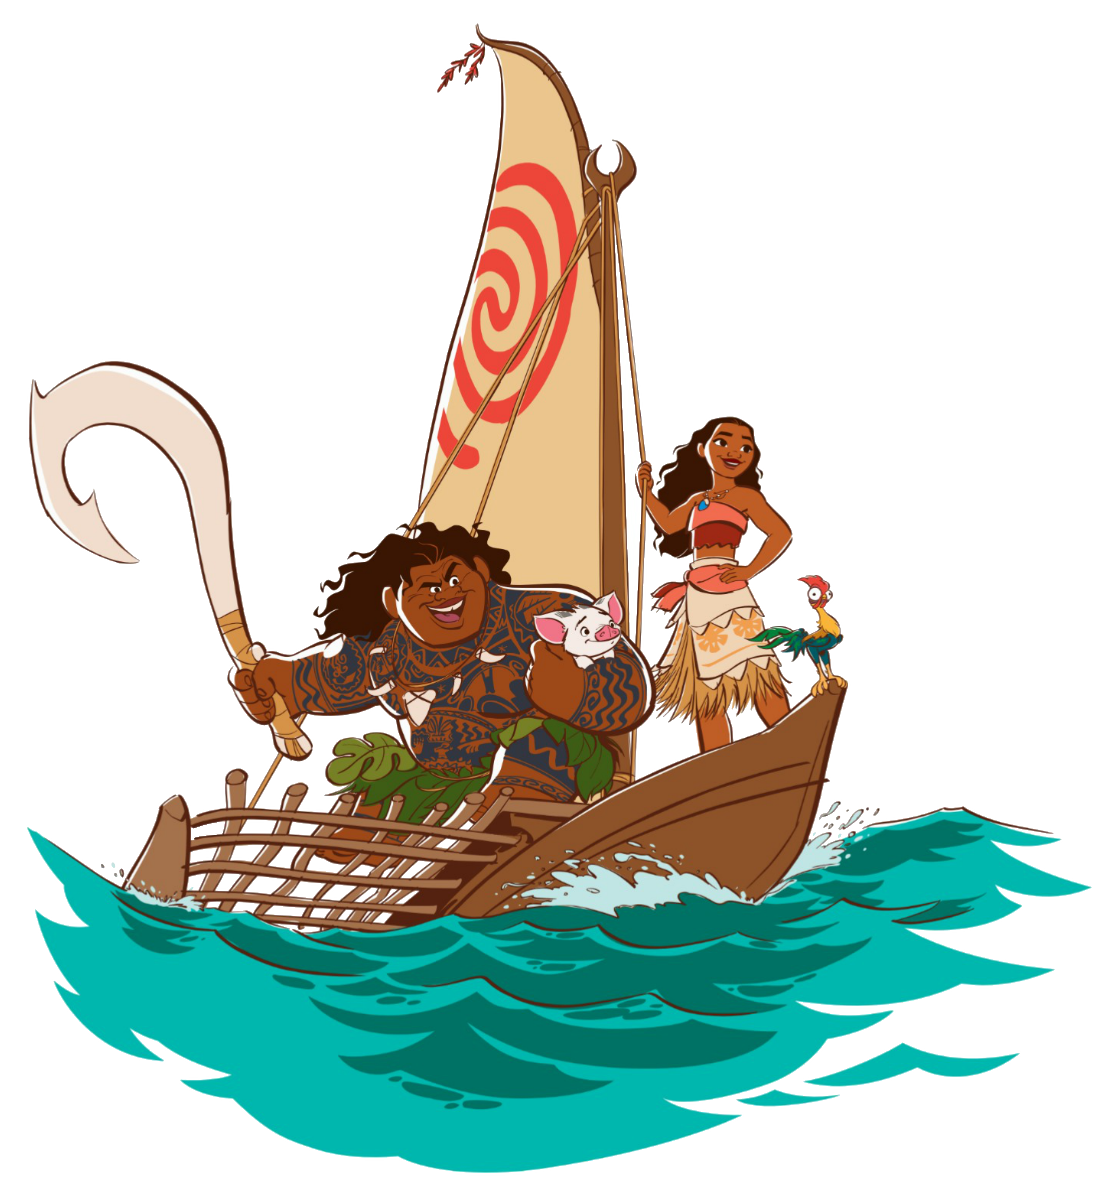 image moana s team png disney wiki fandom powered by wikia Finding Nemo Clip Art Lilo and Stitch Clip Art